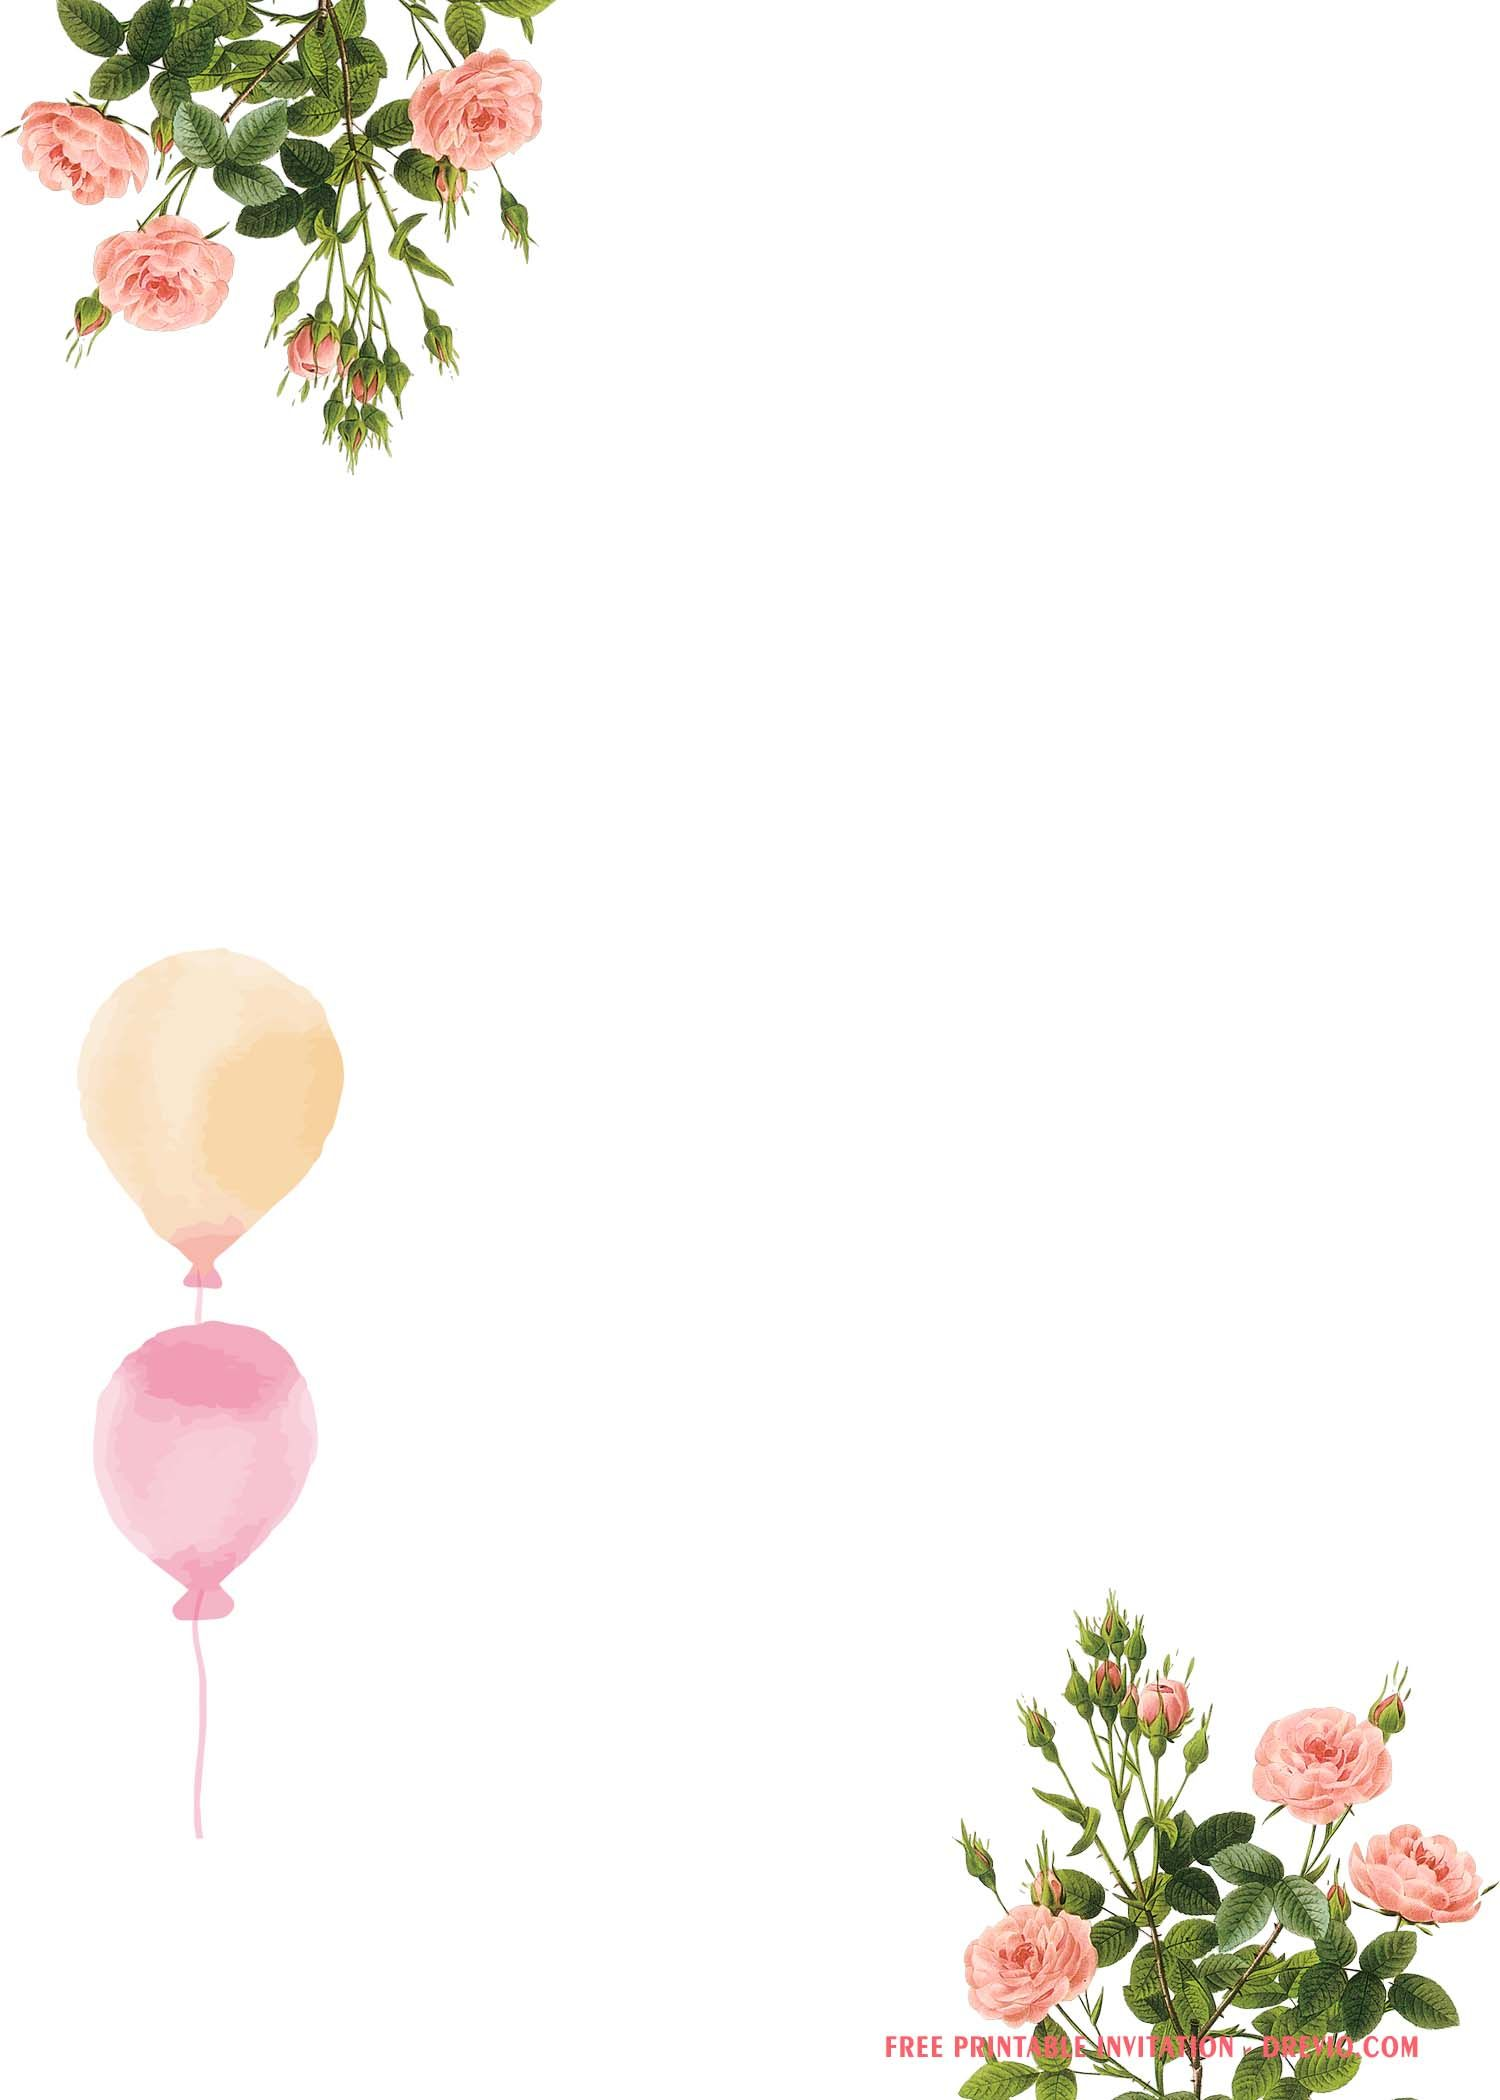 Pin on Cute backgrounds for iphone